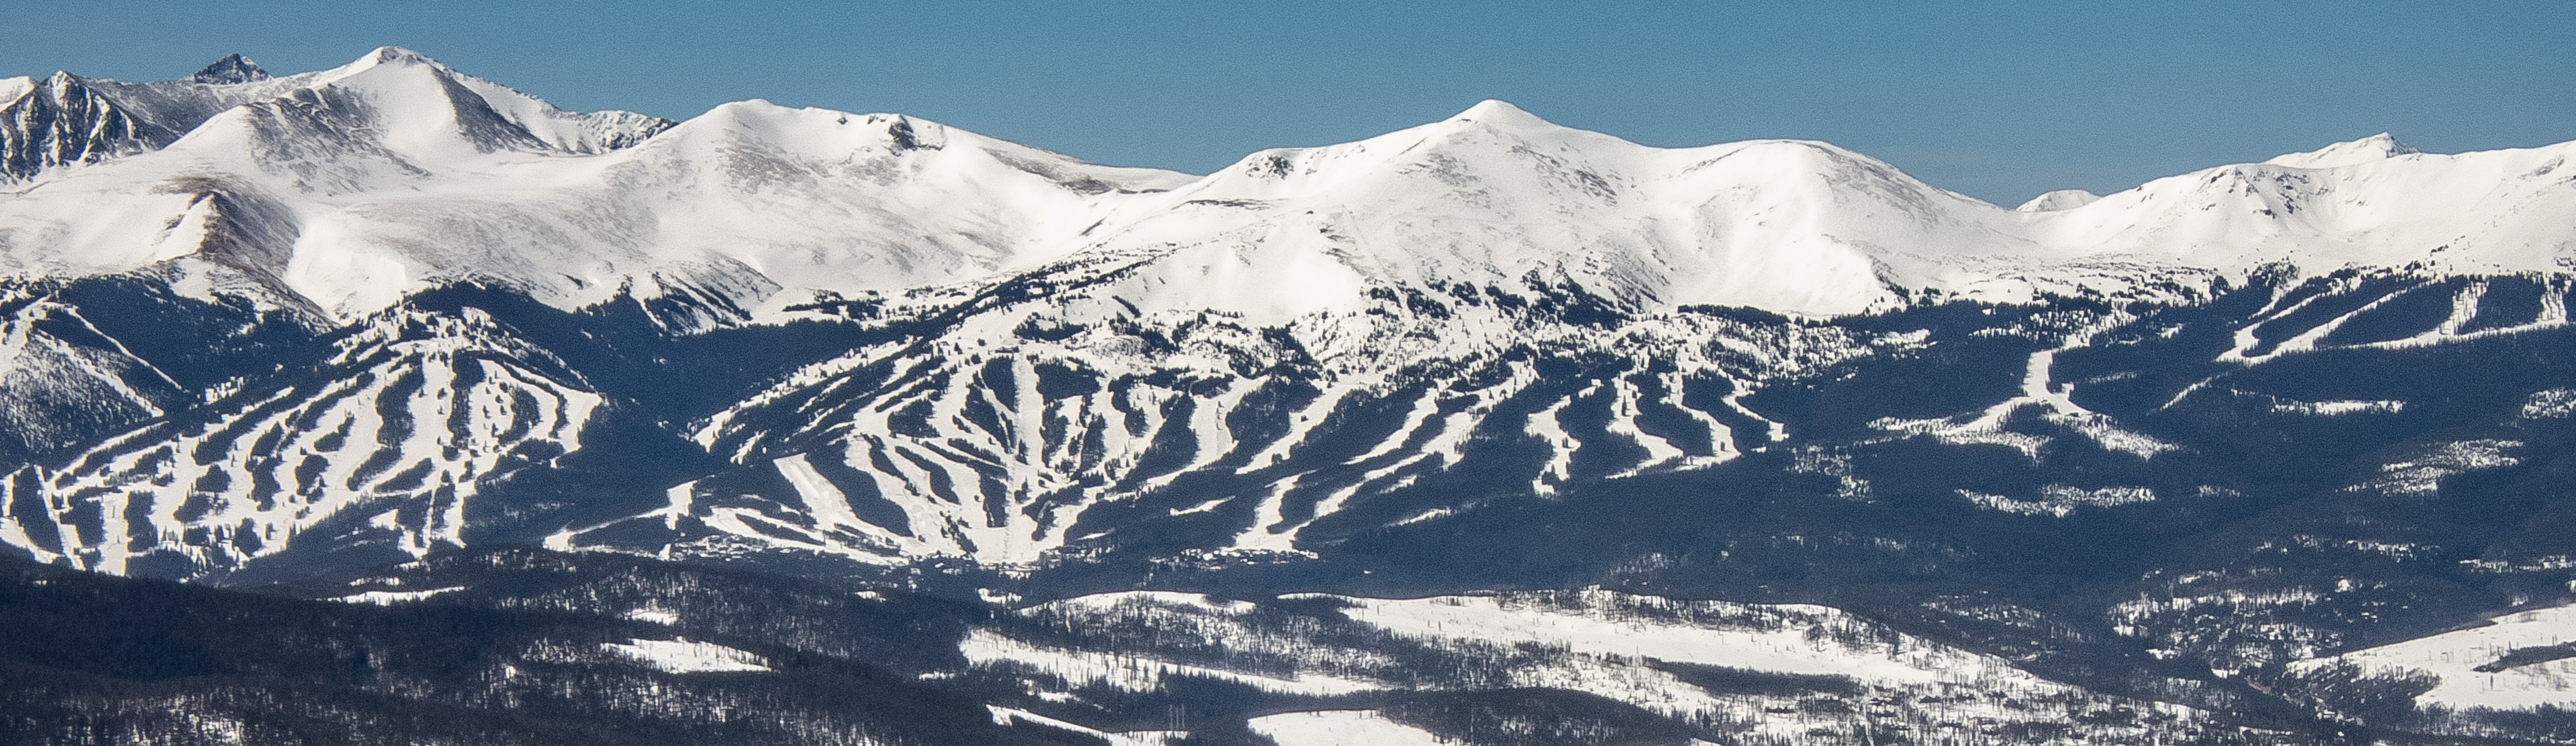 Breckenridge from Keystone